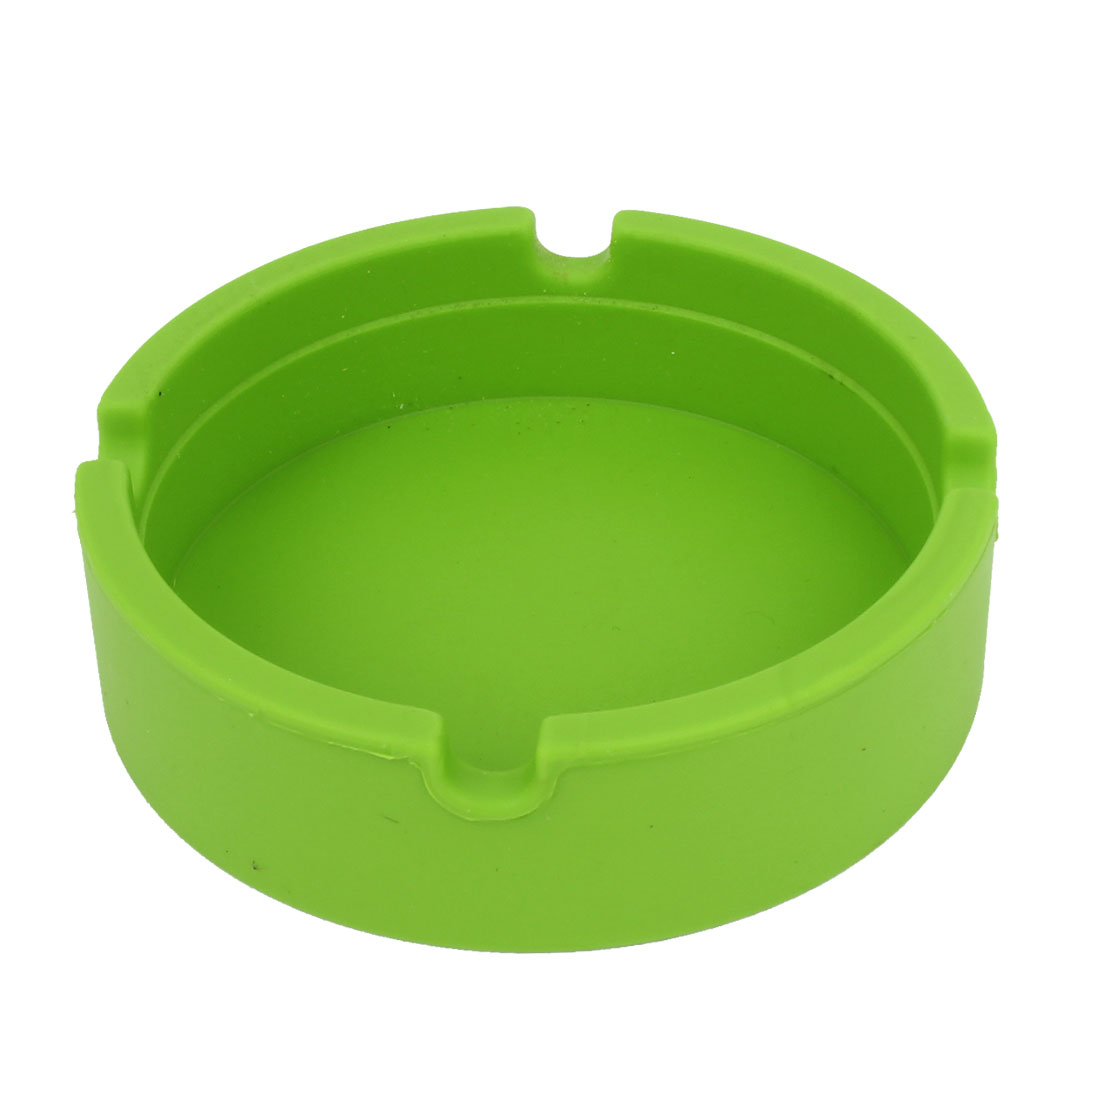 Household Silicone Round Wine Water Bottle Drink Cup Coaster Green